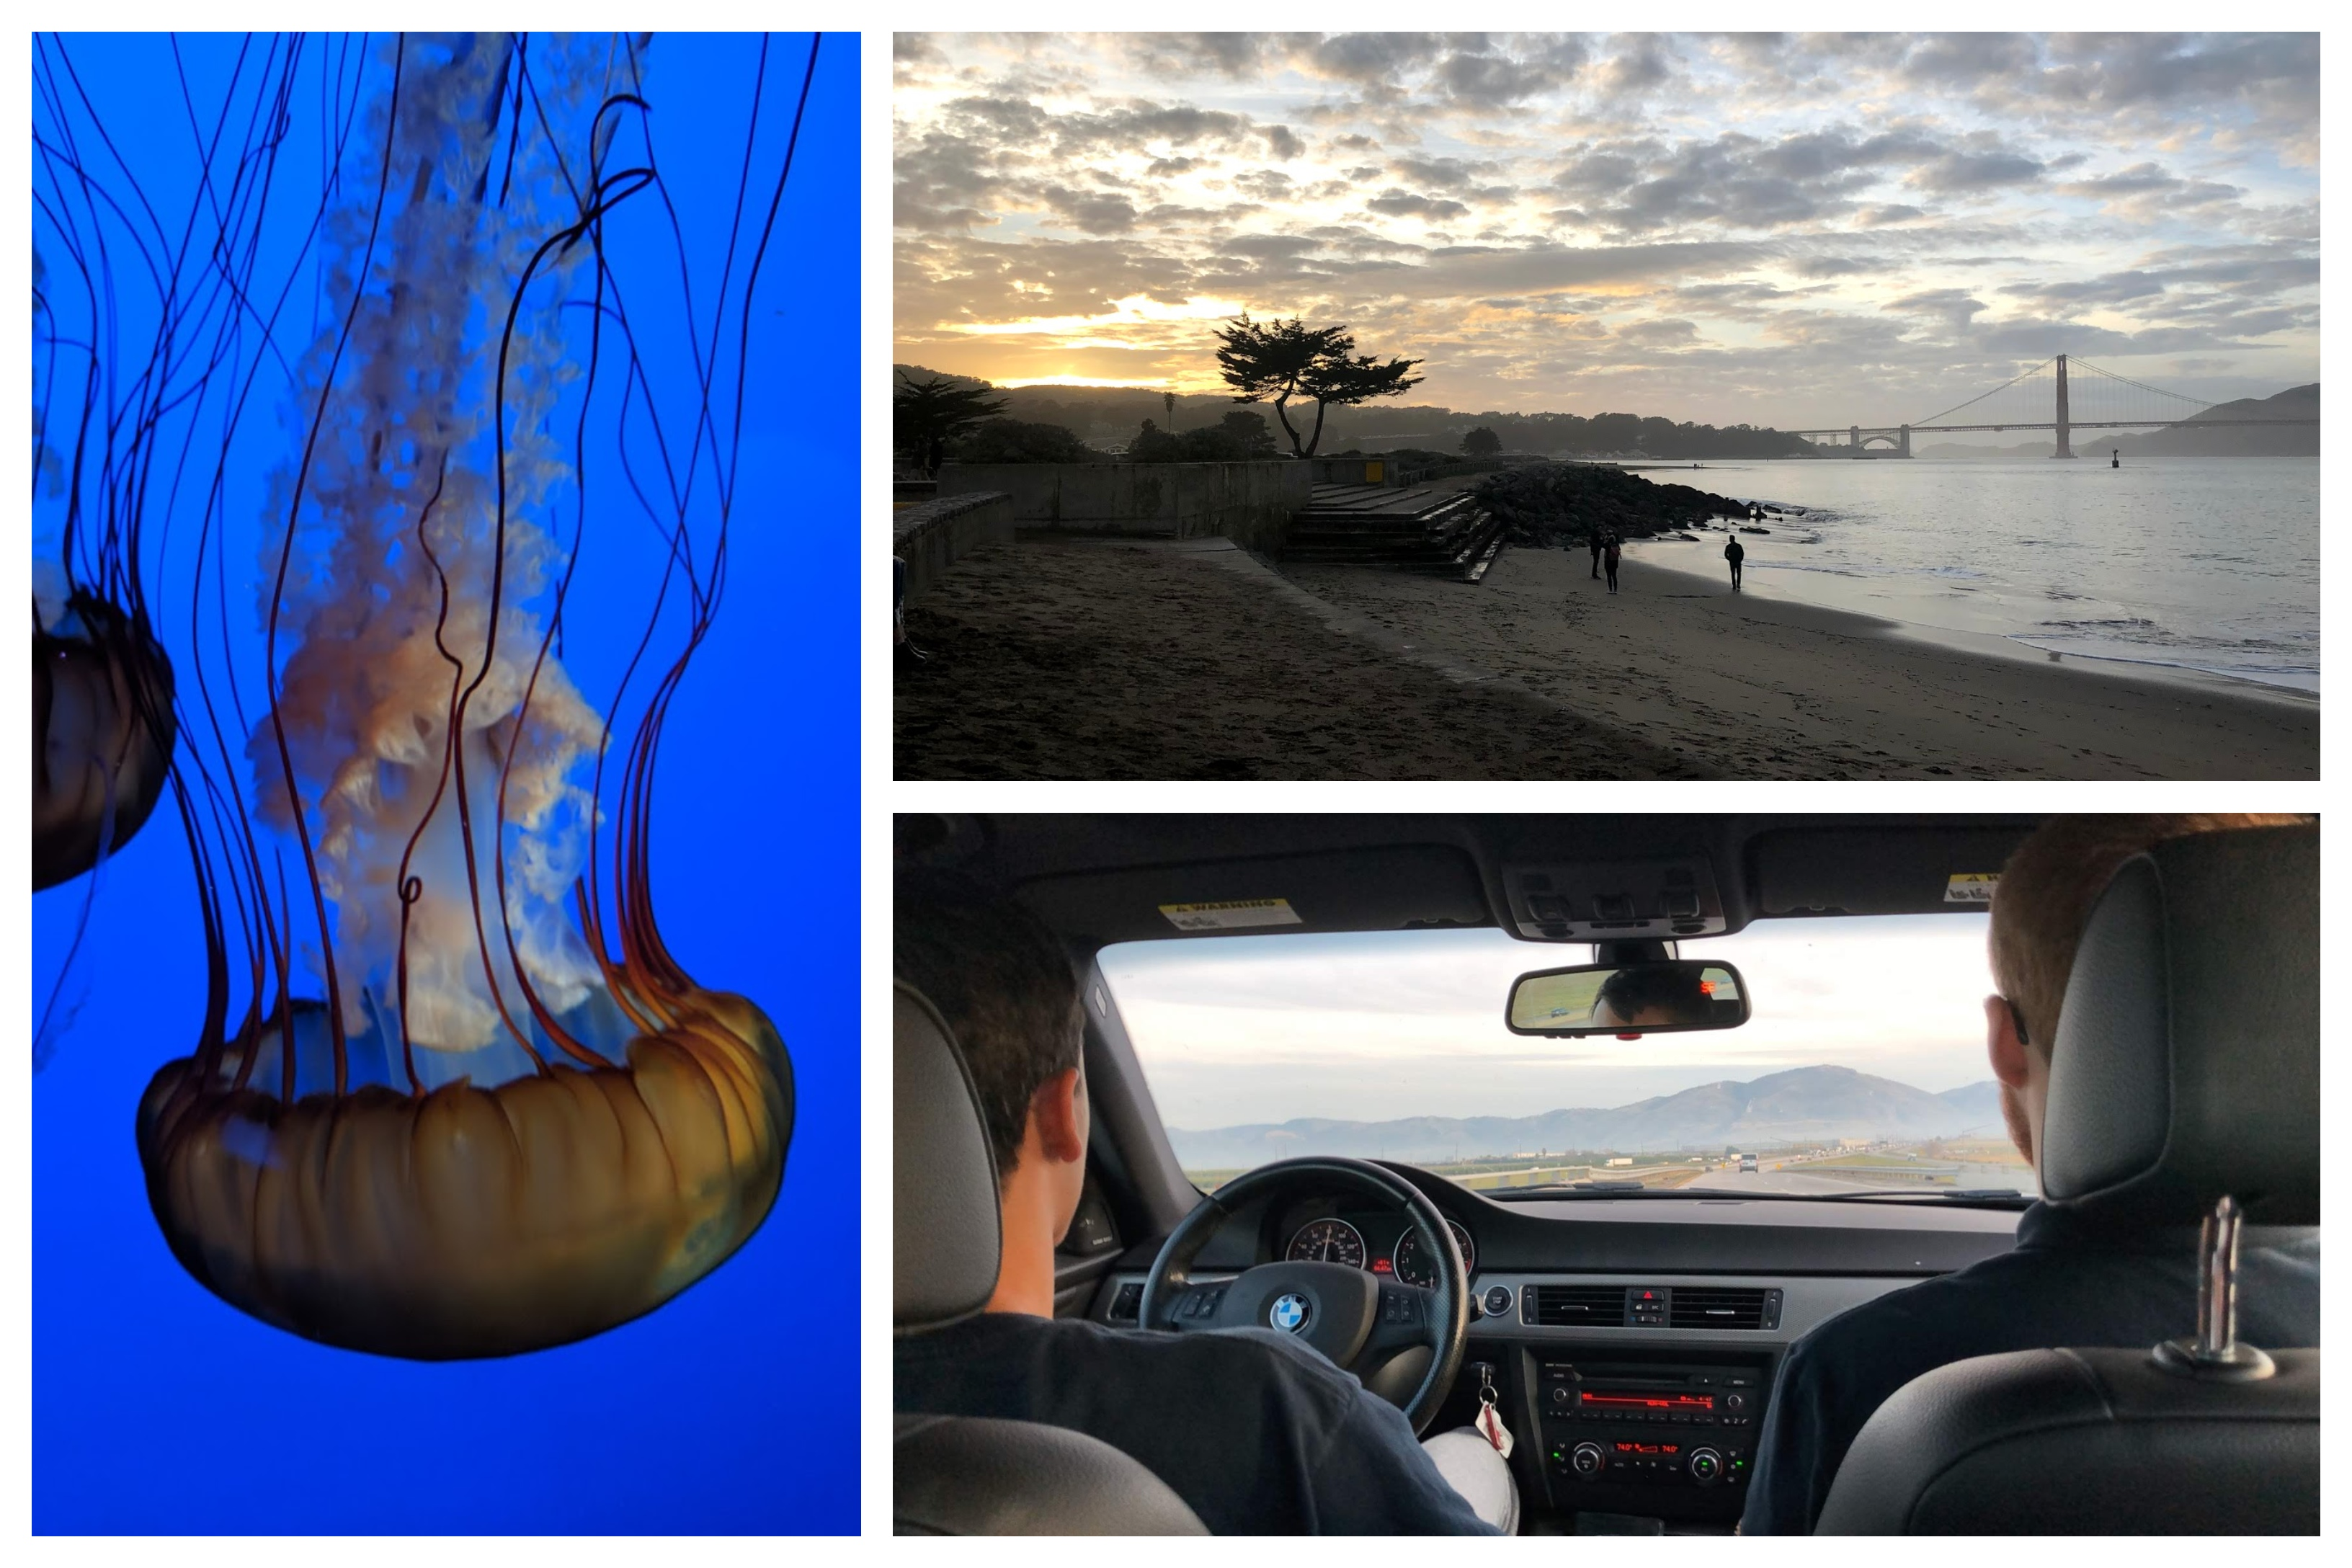 A jelly fish, photo of a sunset with the golden gate bridge in the background, and a photo of two guys in a car front row taken from the back row.